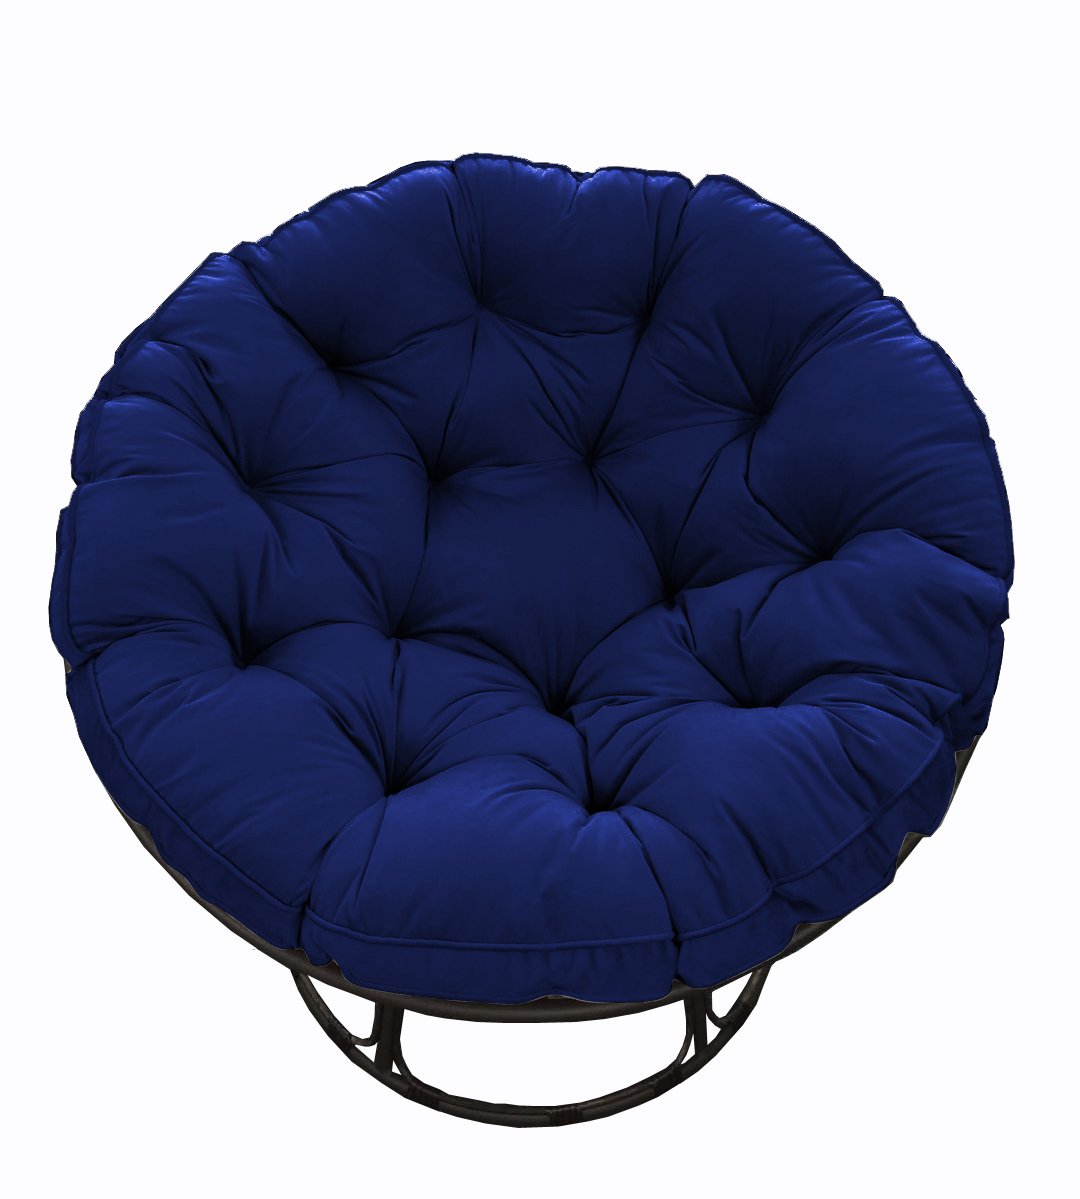 Enjoyable Better Homes Gardens Papasan Chair With Cushion Multiple Pabps2019 Chair Design Images Pabps2019Com